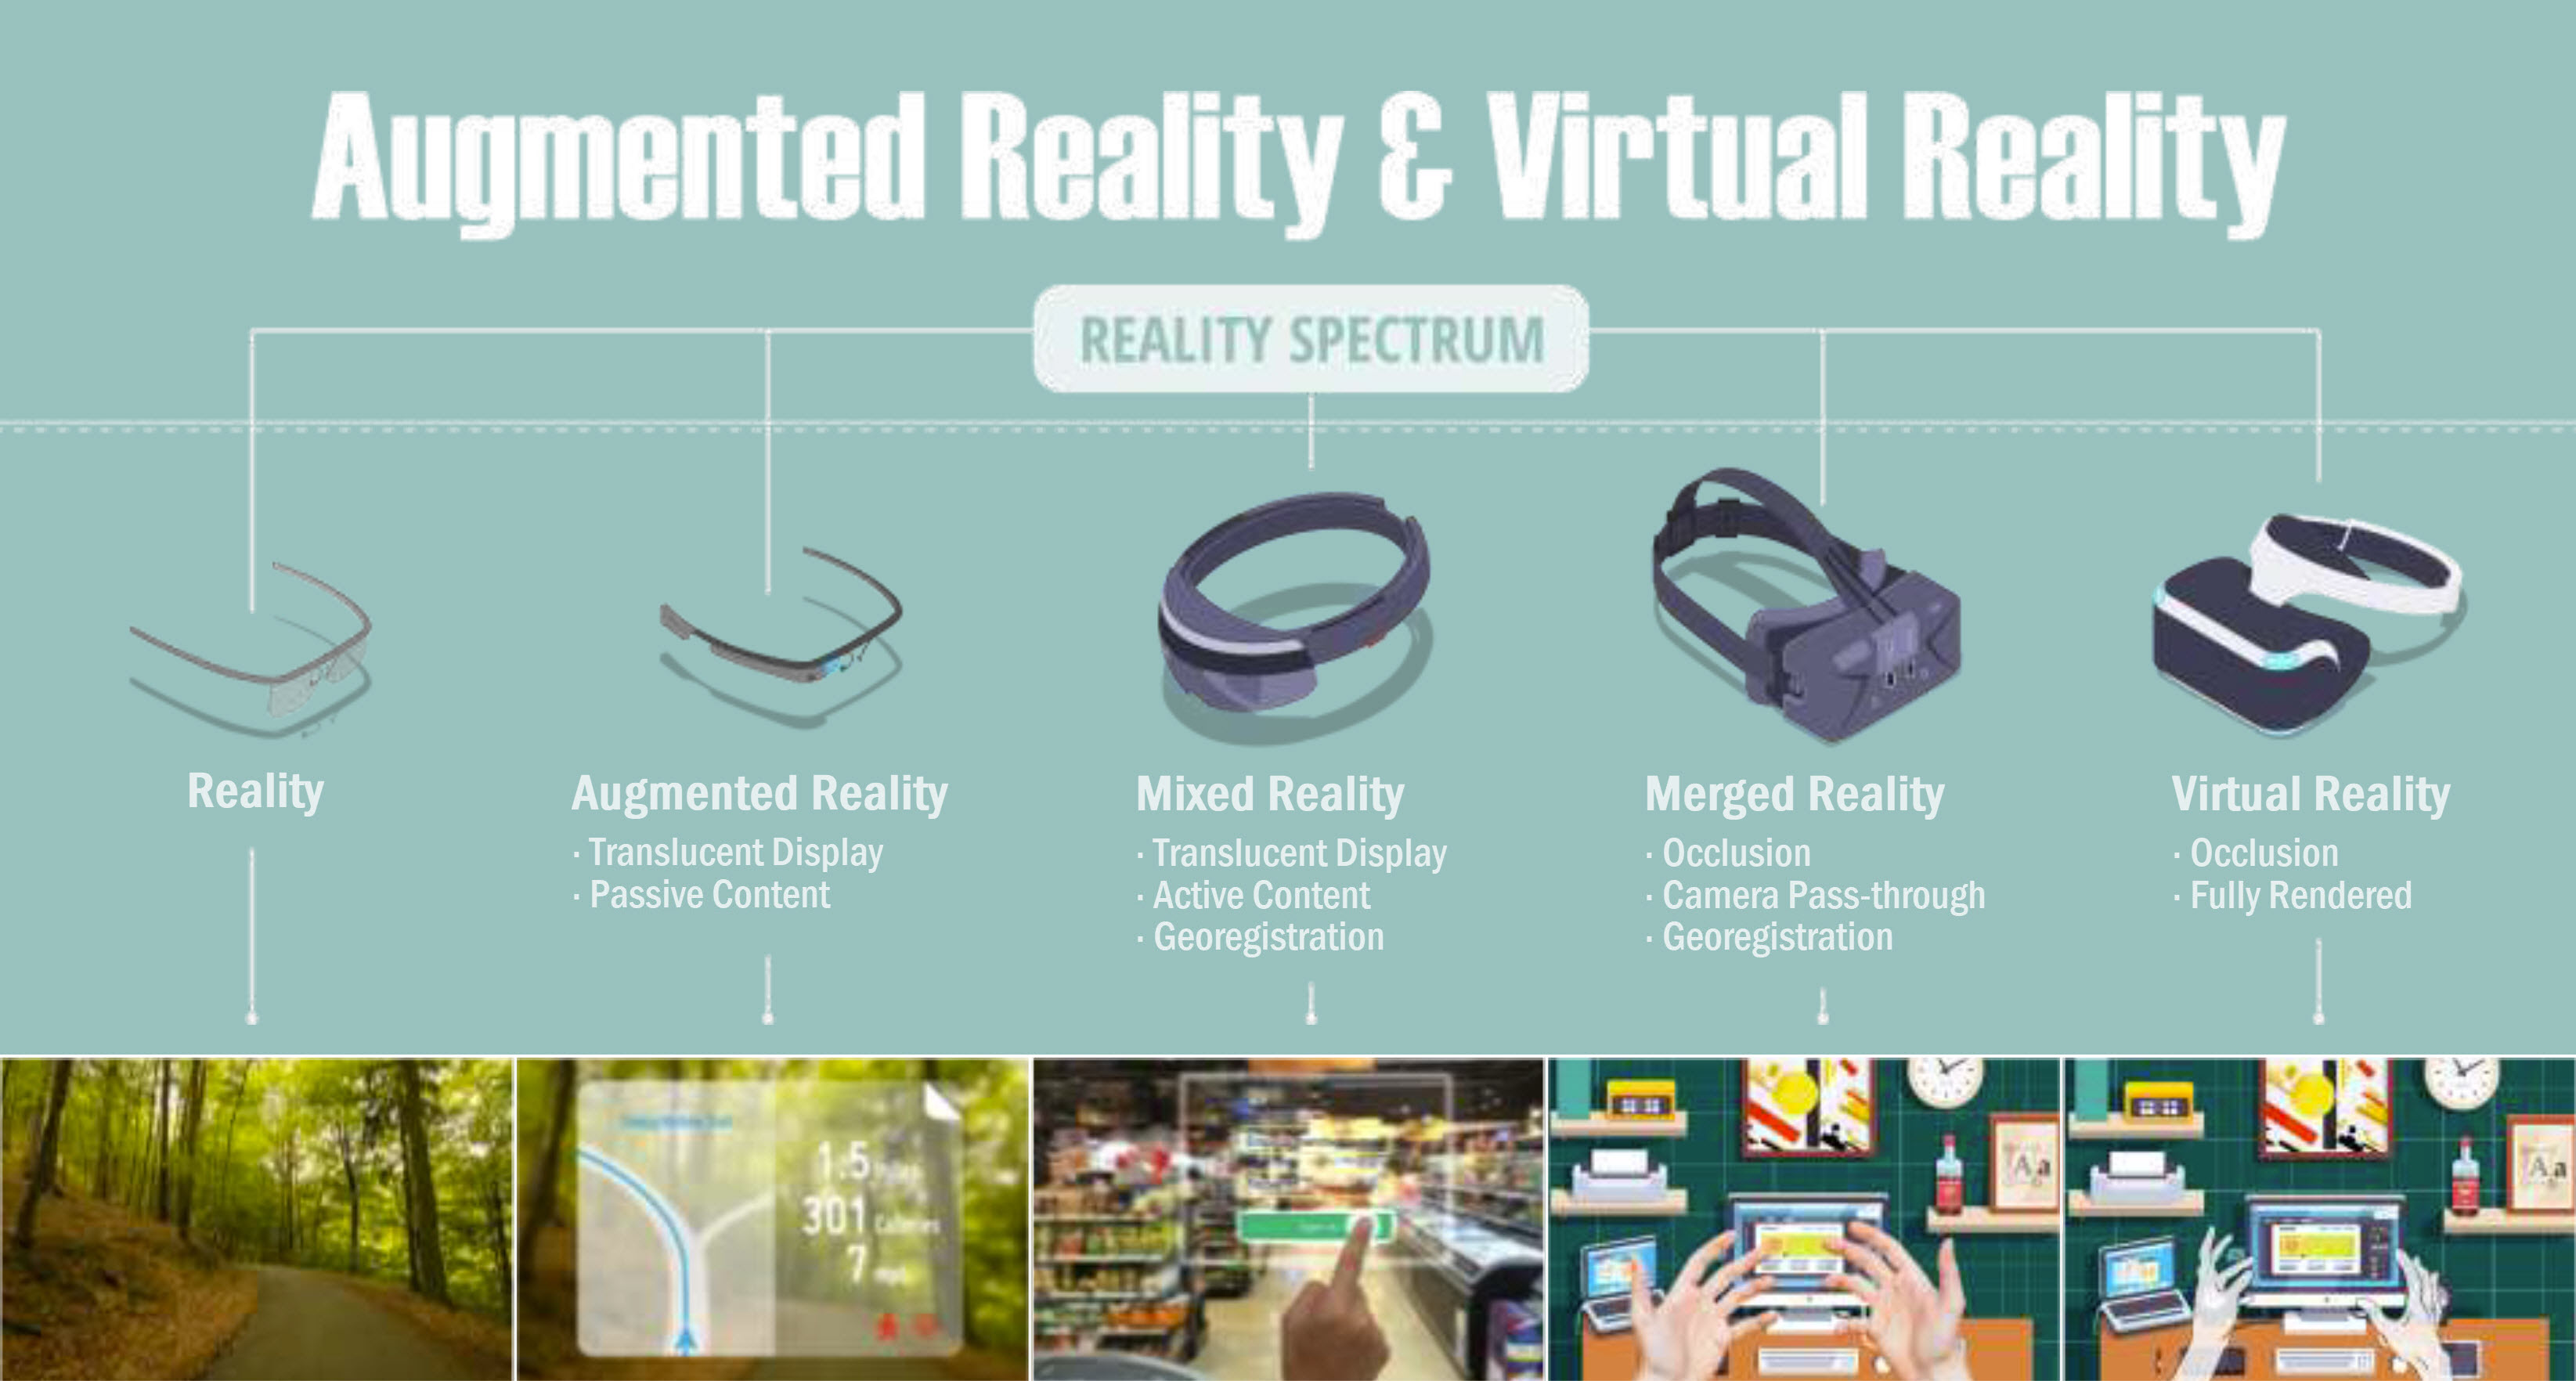 Augmented and Virtual Reality Spectrum from ABI Research